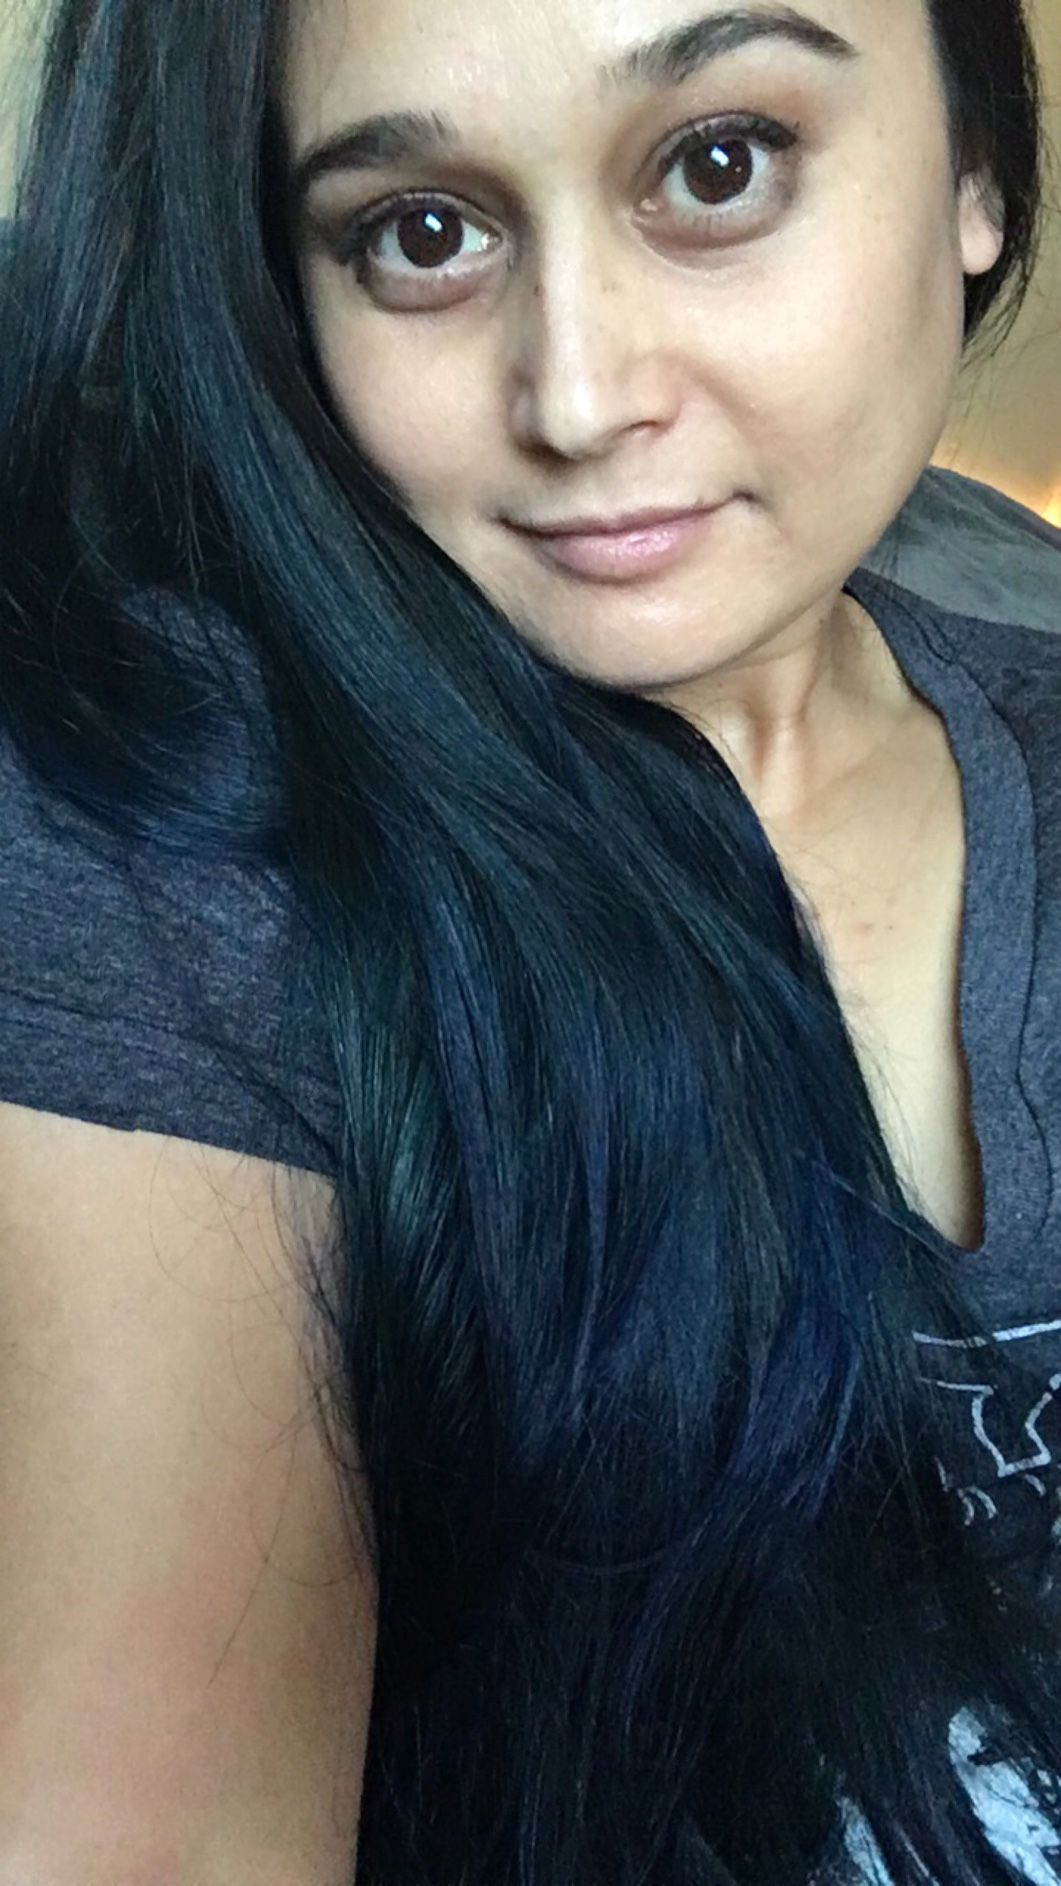 Moody blues. My hair to match my mood. Lovin' this color